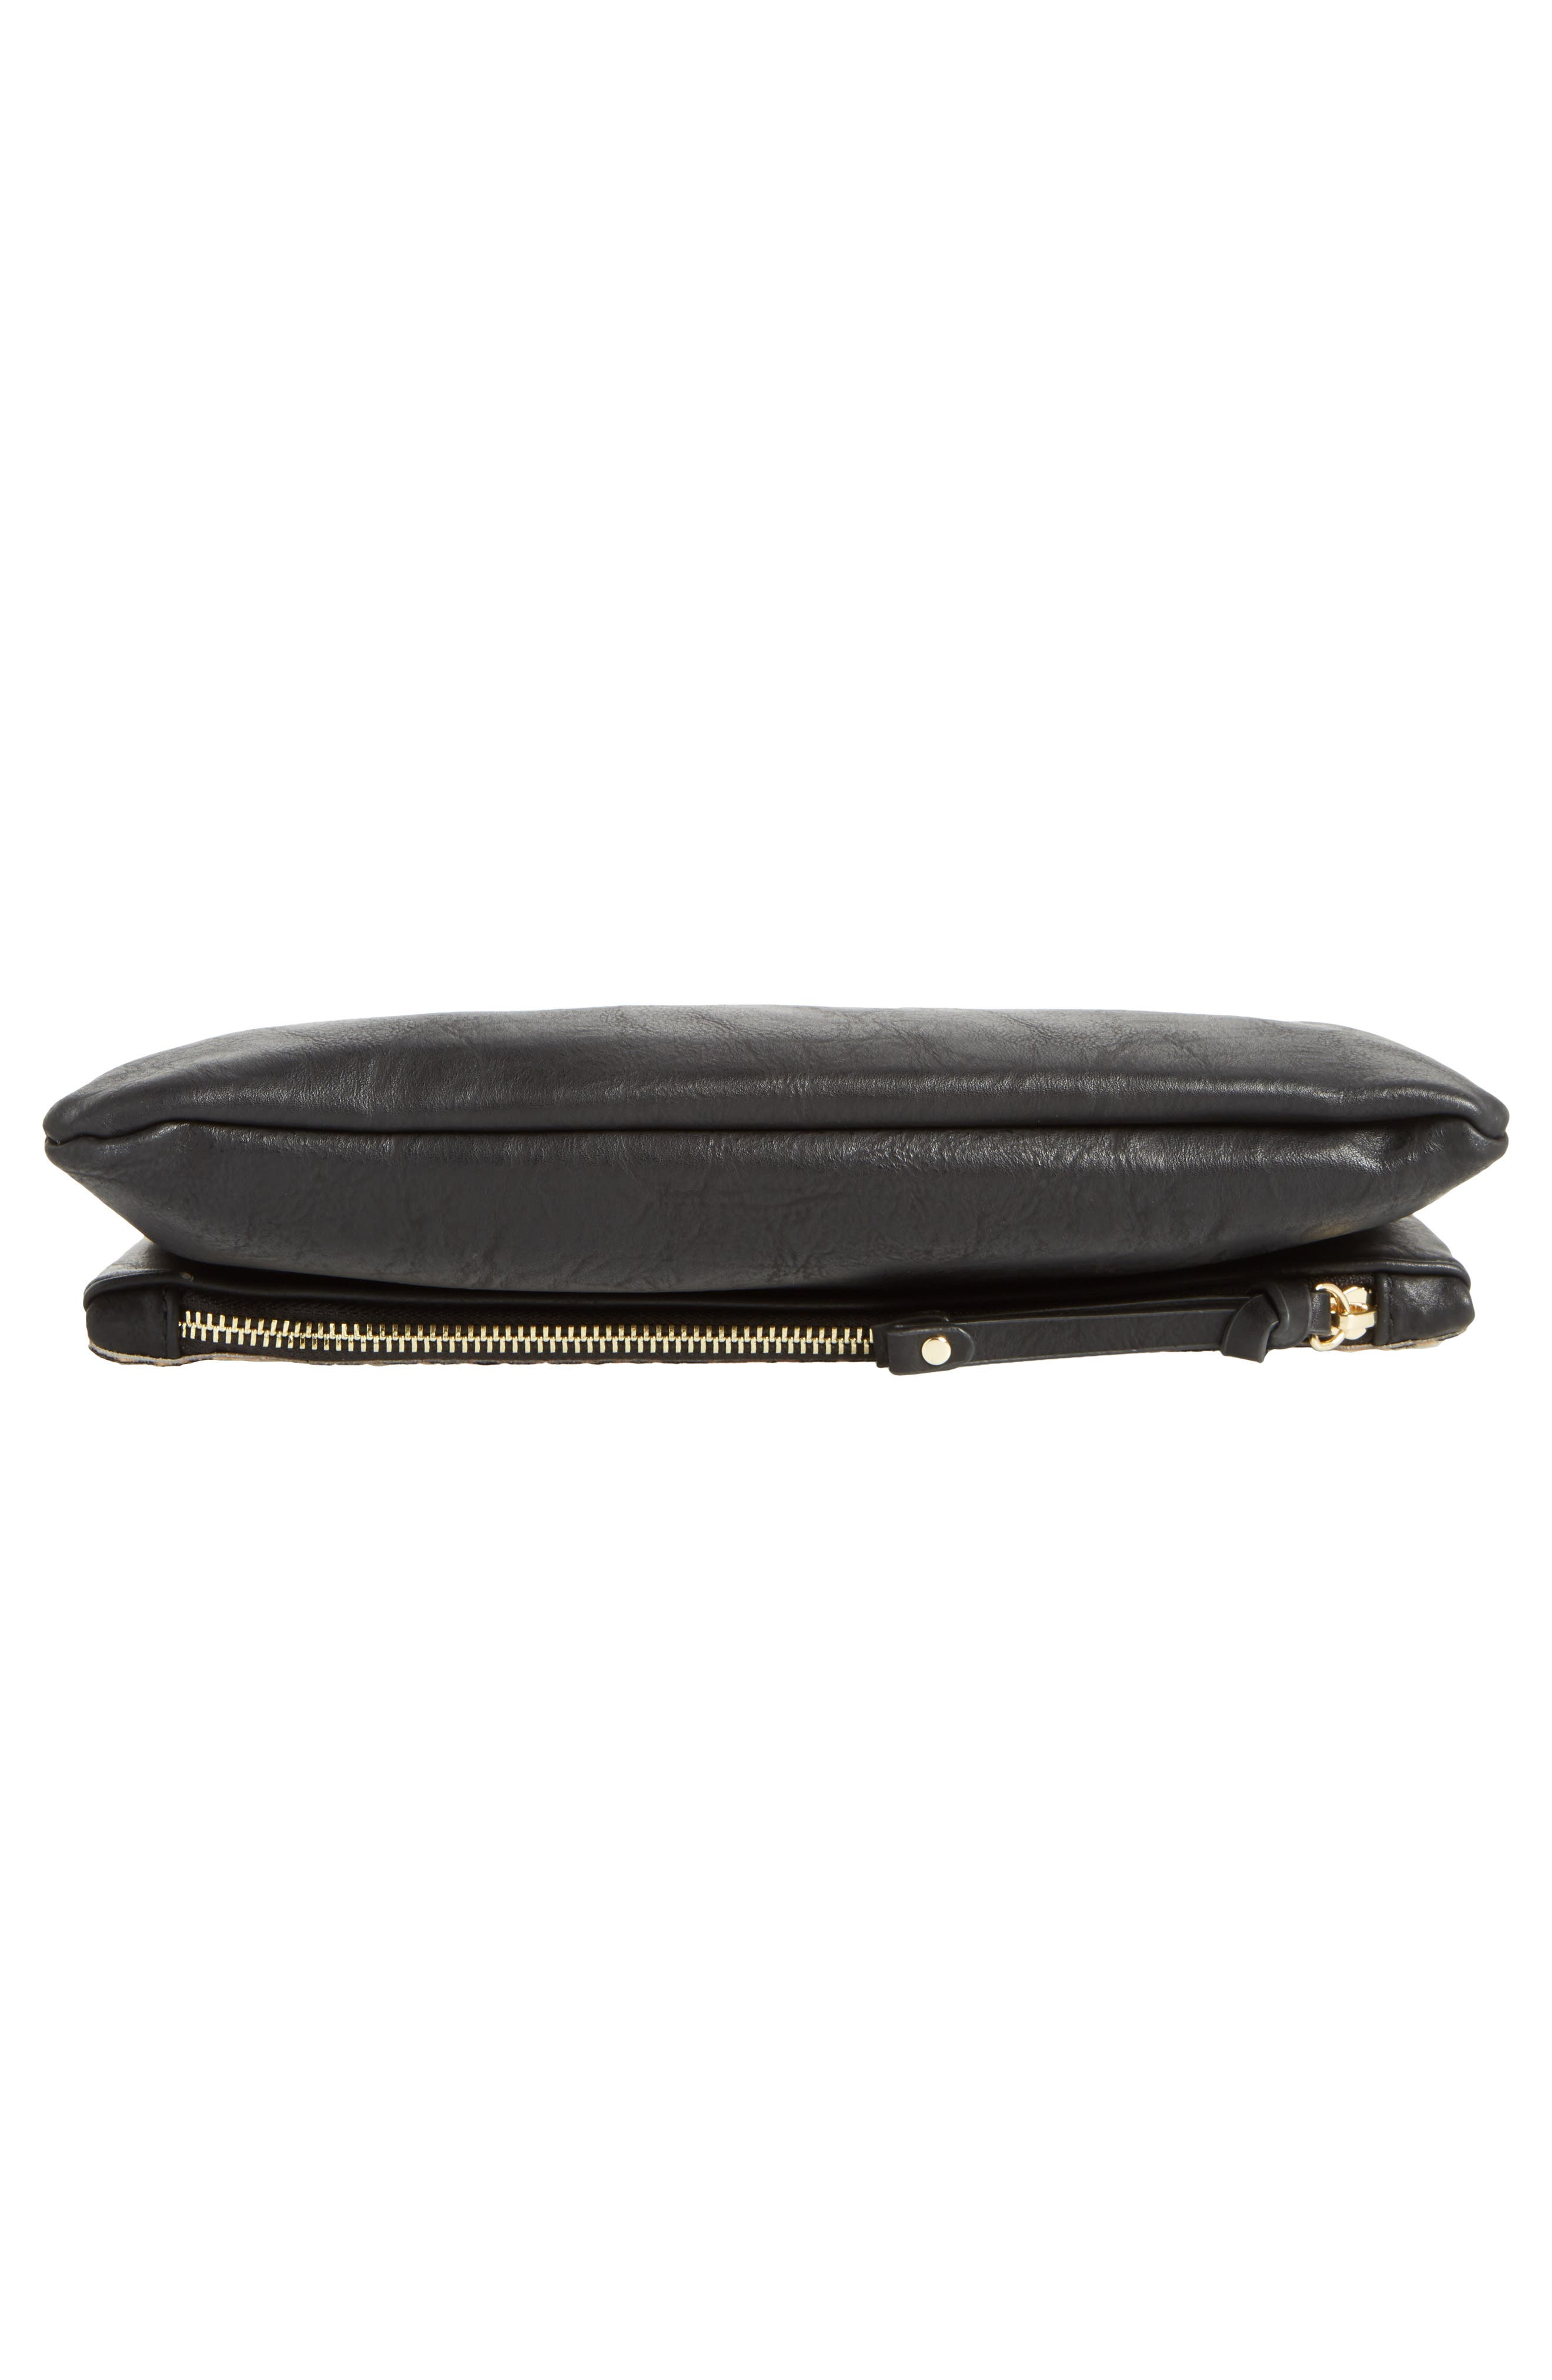 SOLE SOCIETY, Marlena Faux Leather Foldover Clutch, Alternate thumbnail 7, color, 200